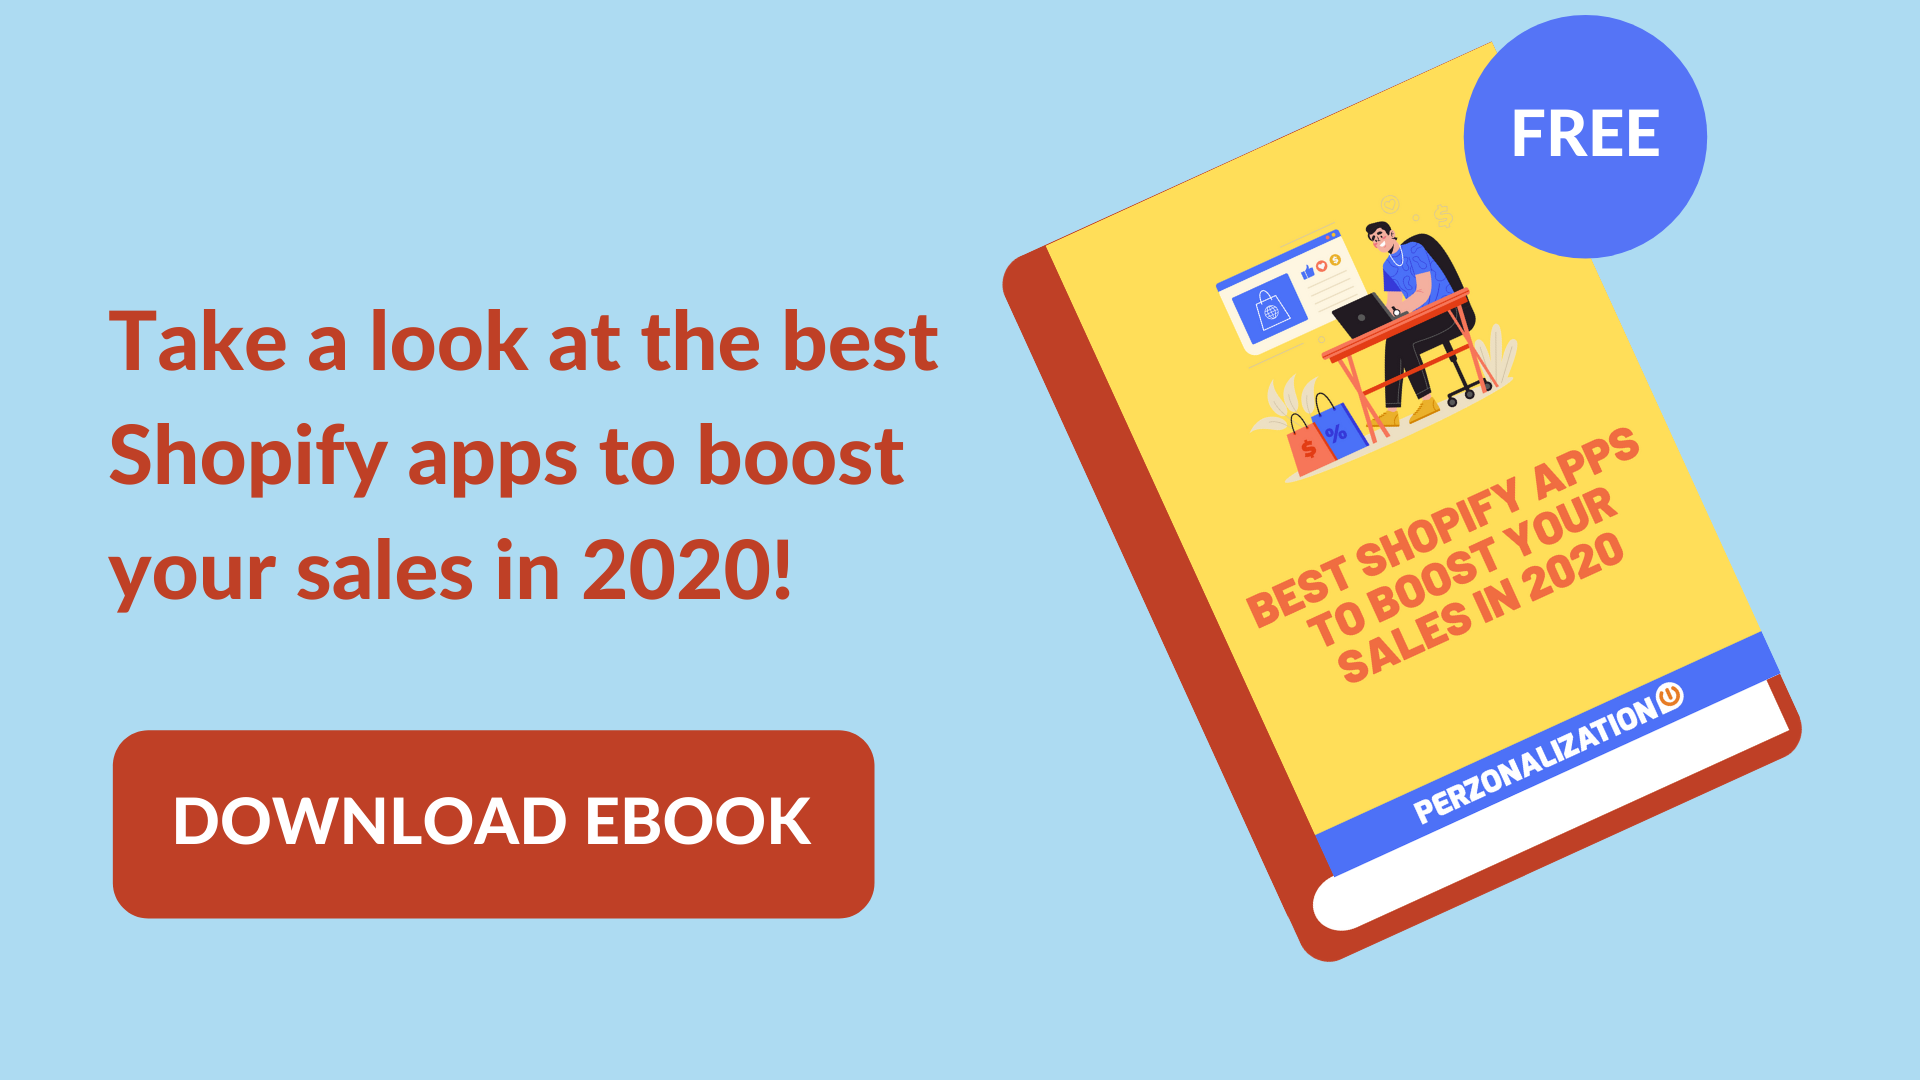 Best Shopify Apps in 2020: Free eBook popup